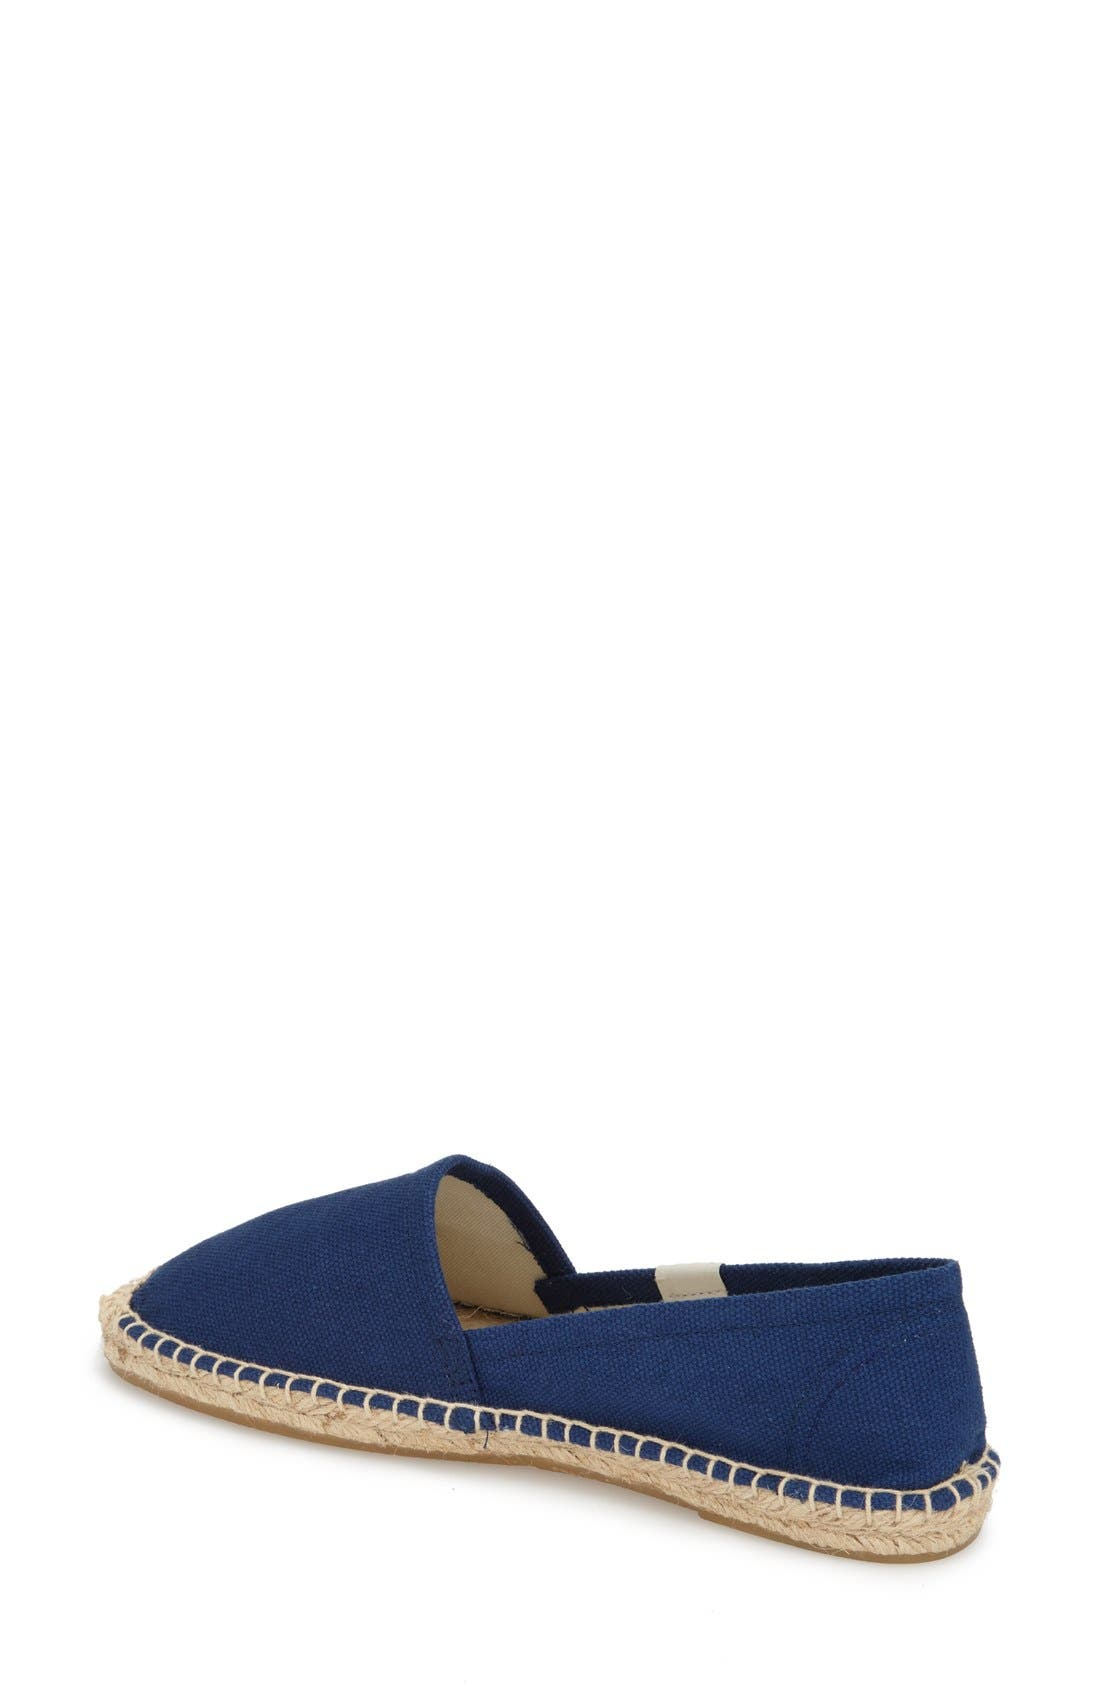 a3c94599024 Soludos All Women | Nordstrom